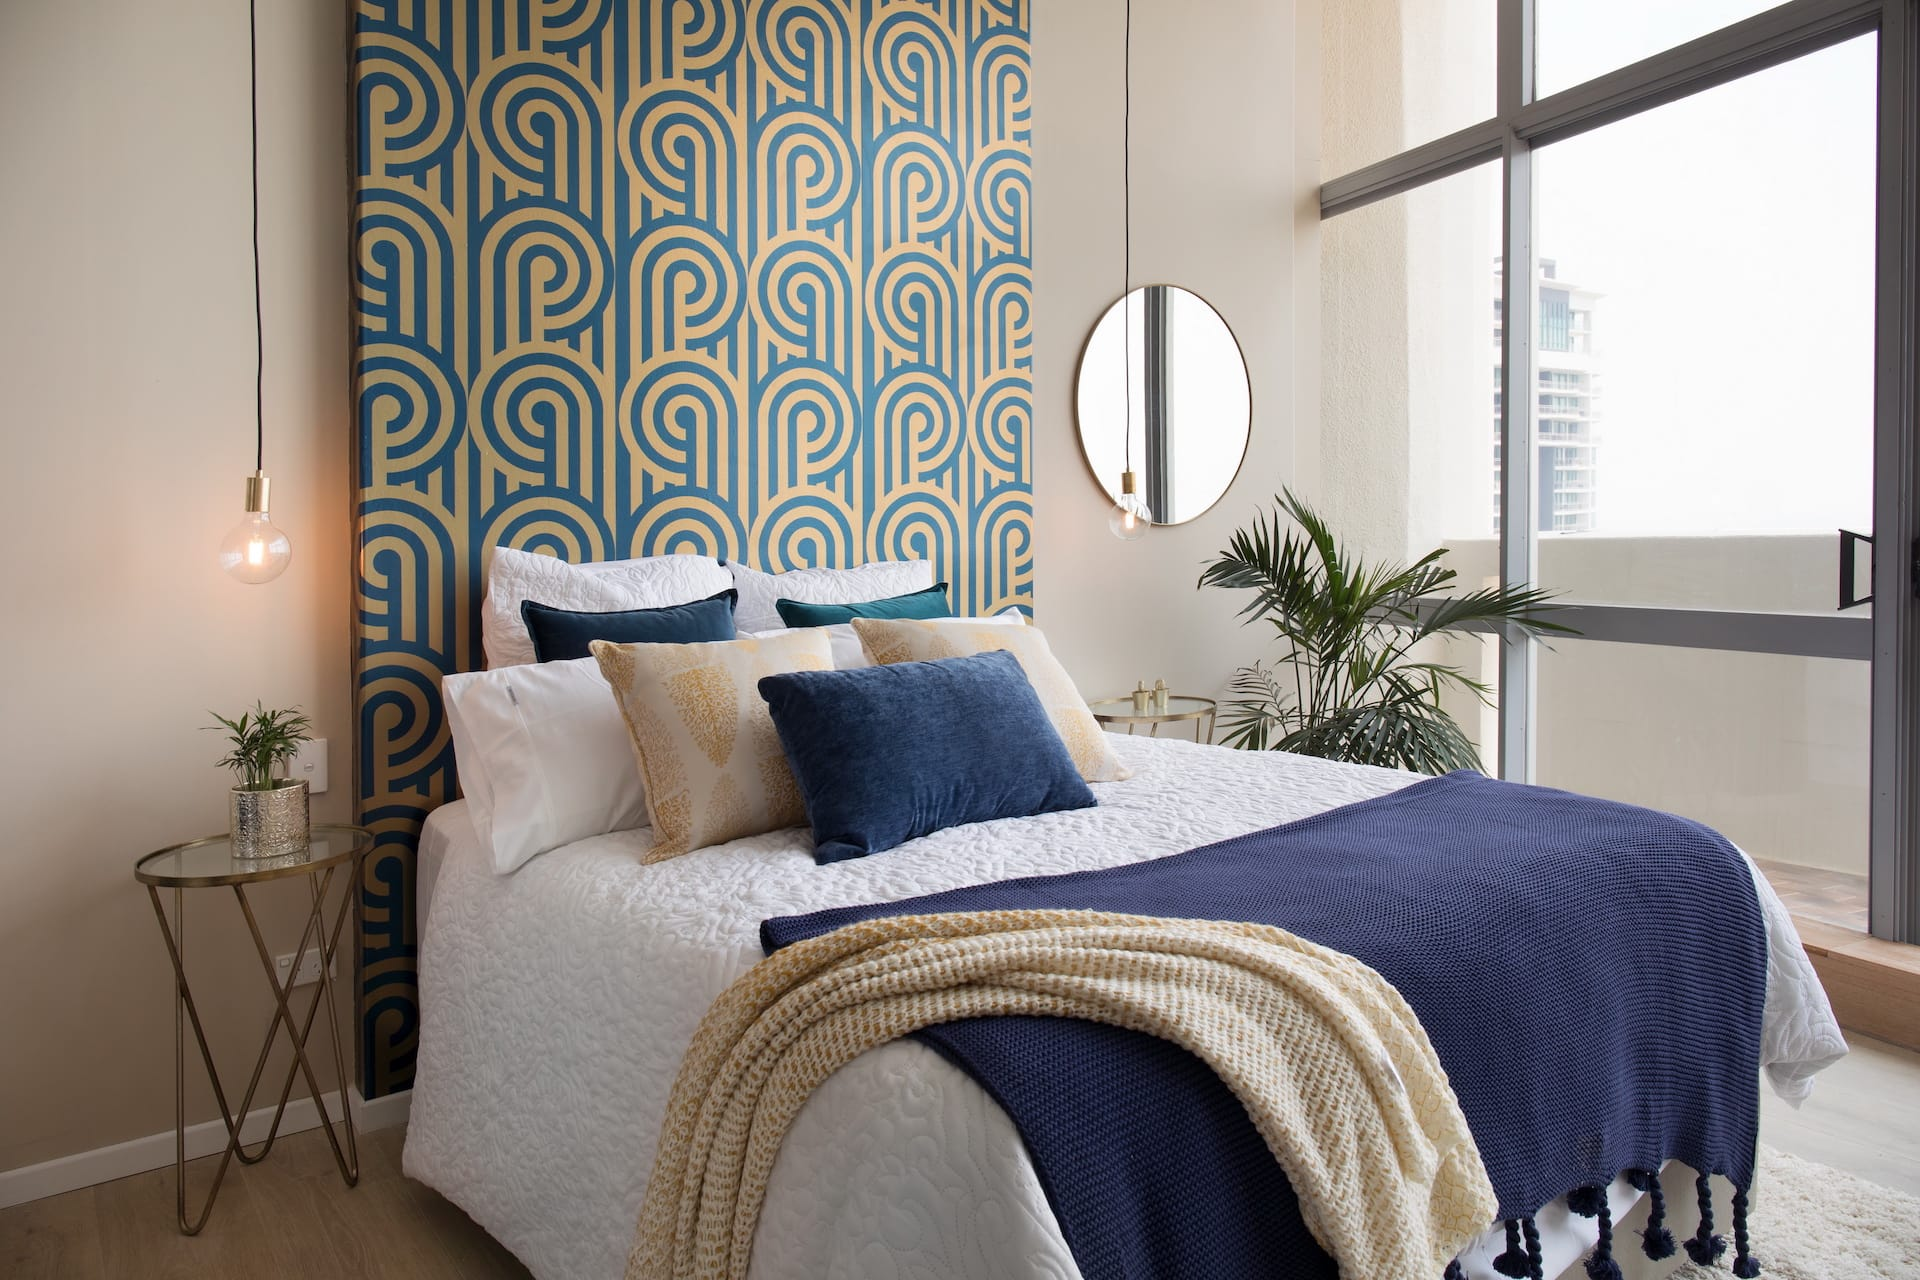 house rules 2020 penthouse reveal bedroom with wallpaper headboard and brass side tables